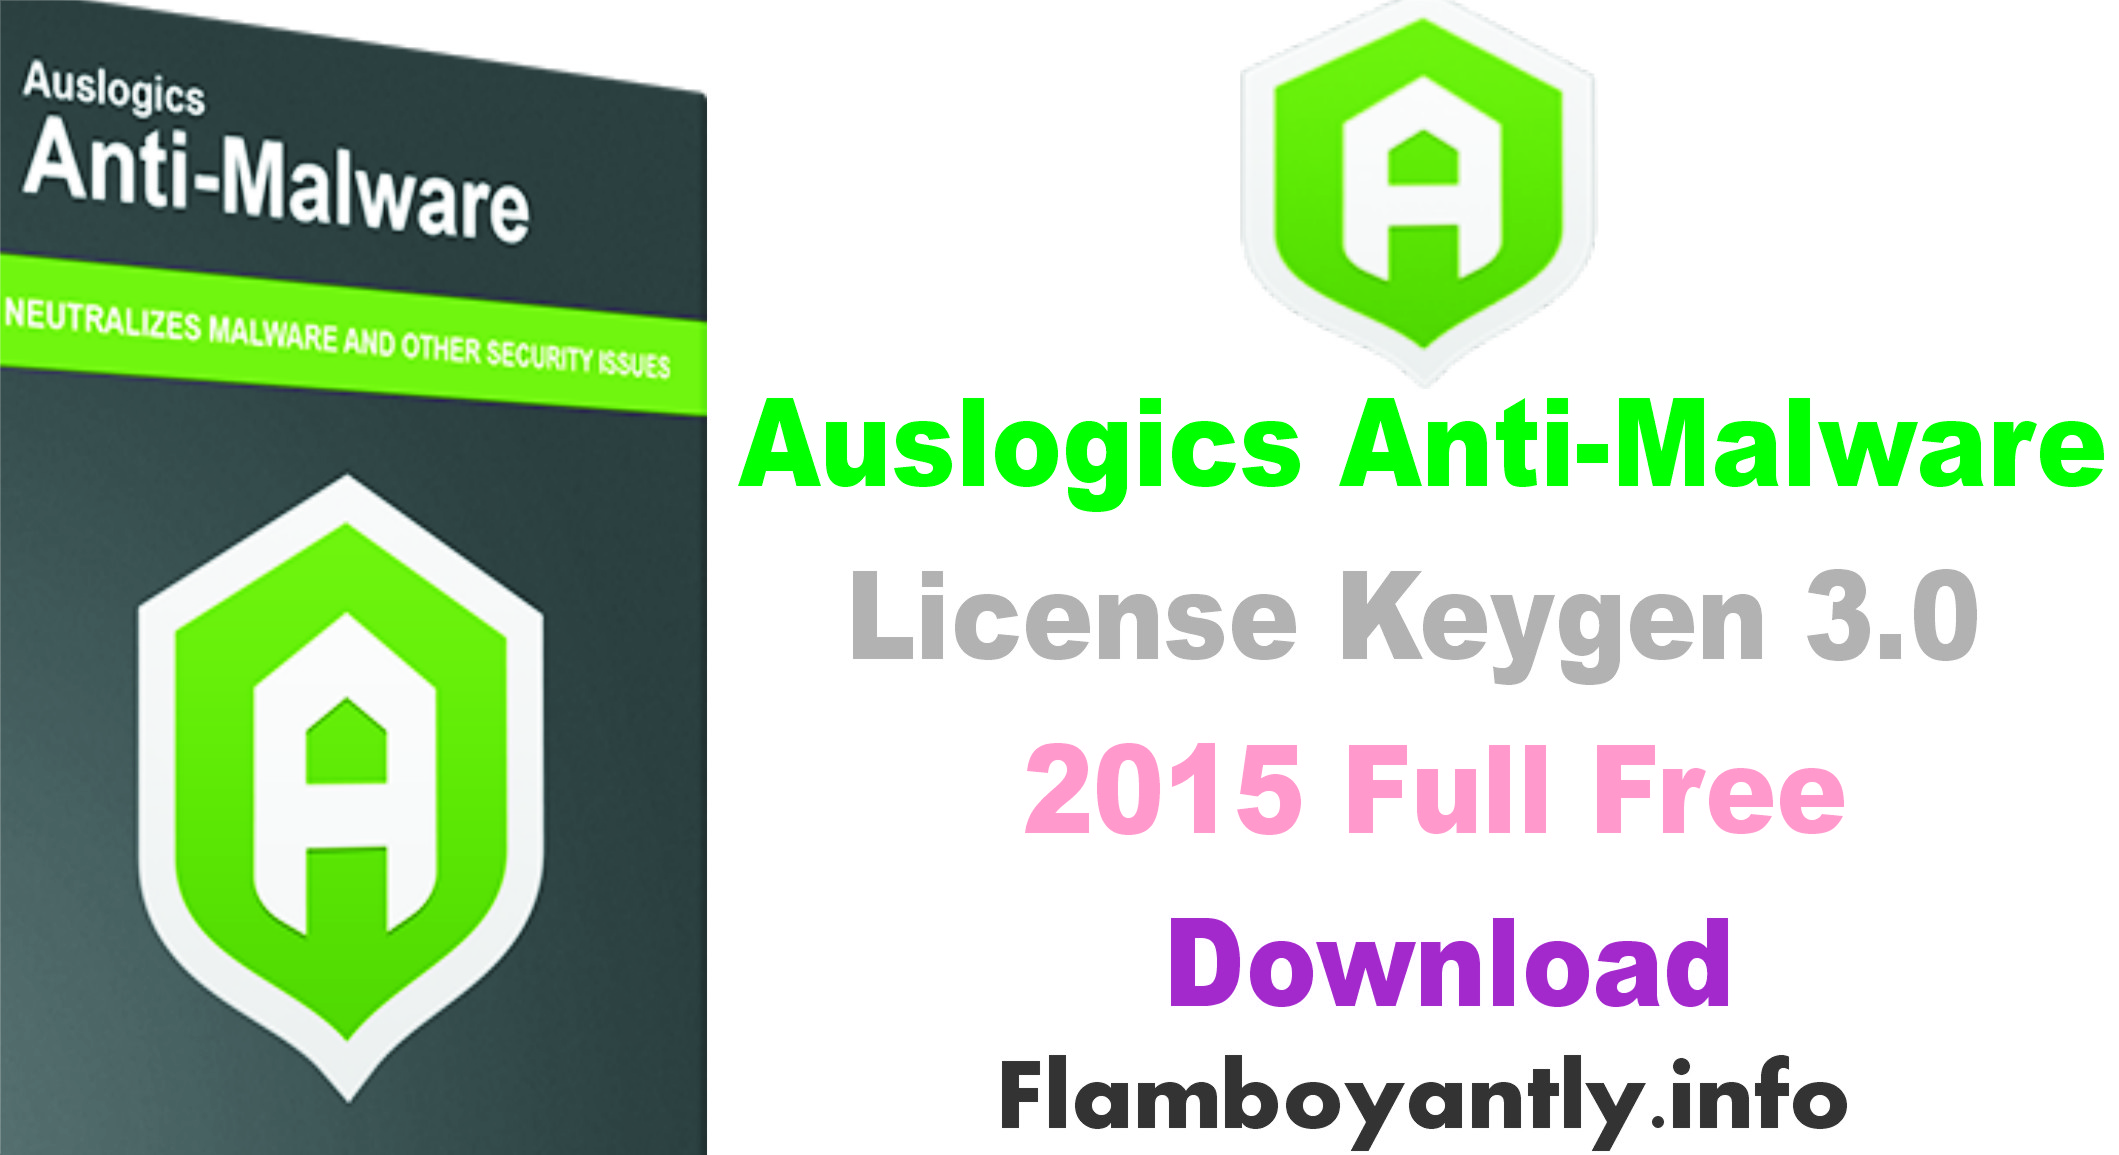 Auslogics Anti-Malware License Keygen 3.0 2015 Full Free Download